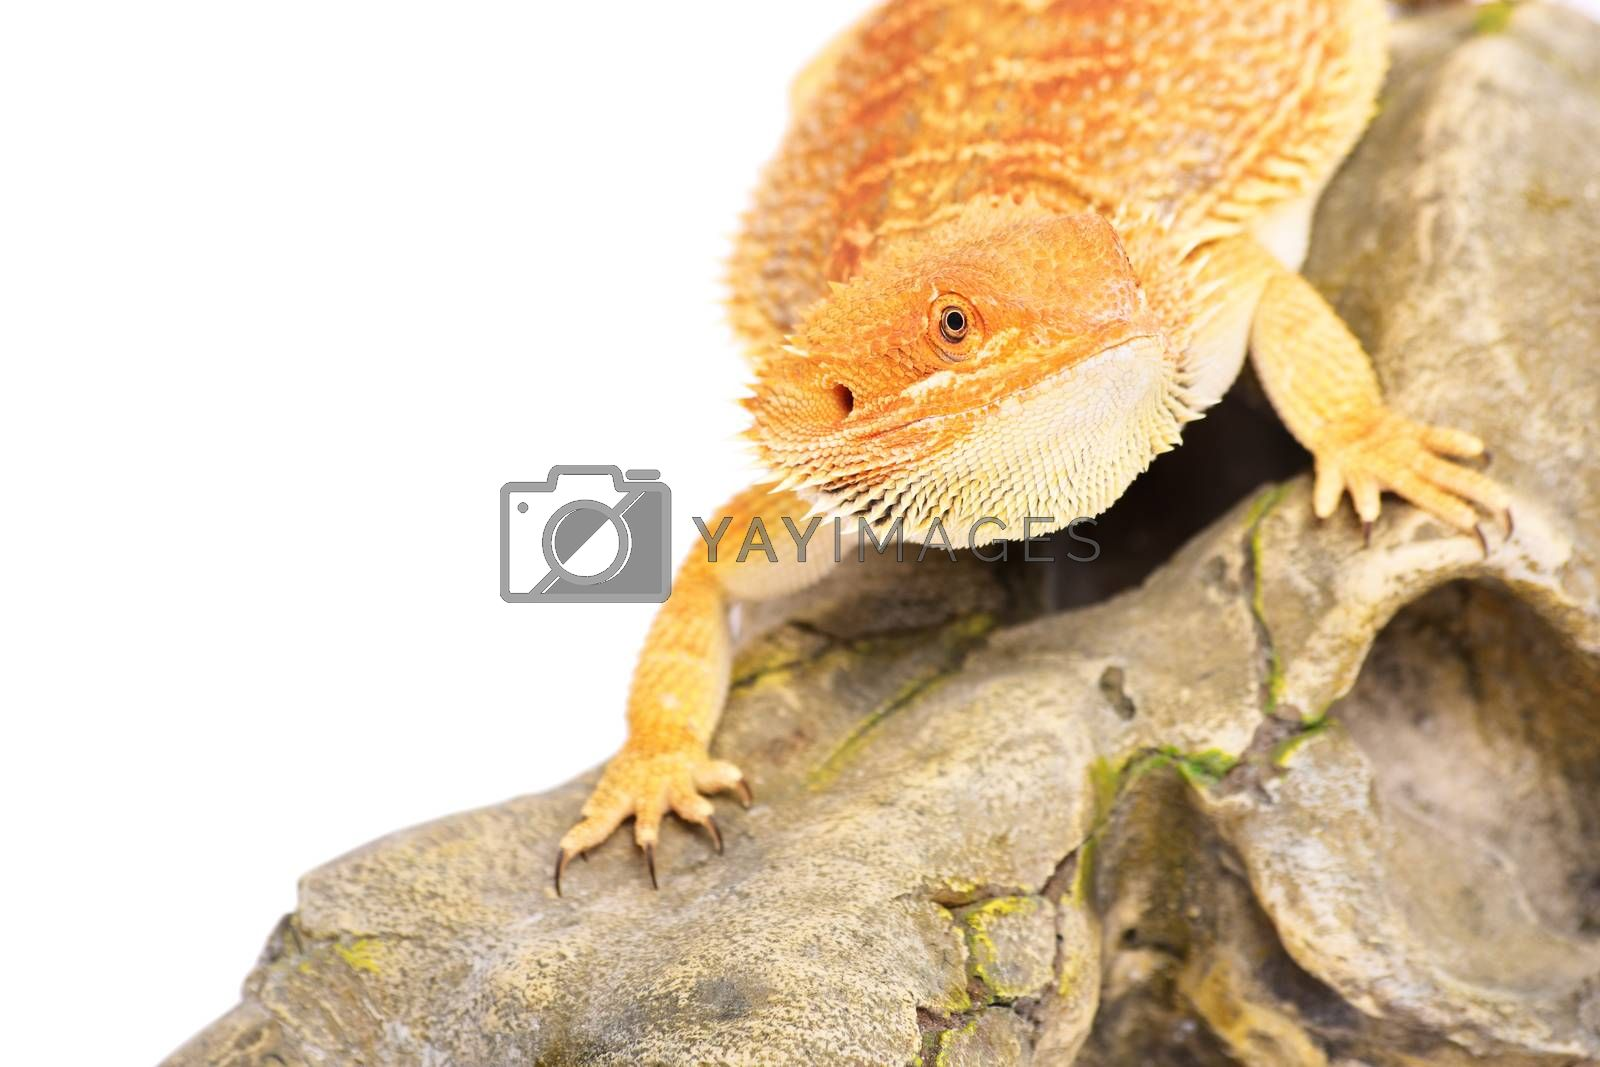 Young bearded dragon standing on a rocky surface looking for pray, isolated on a white background.